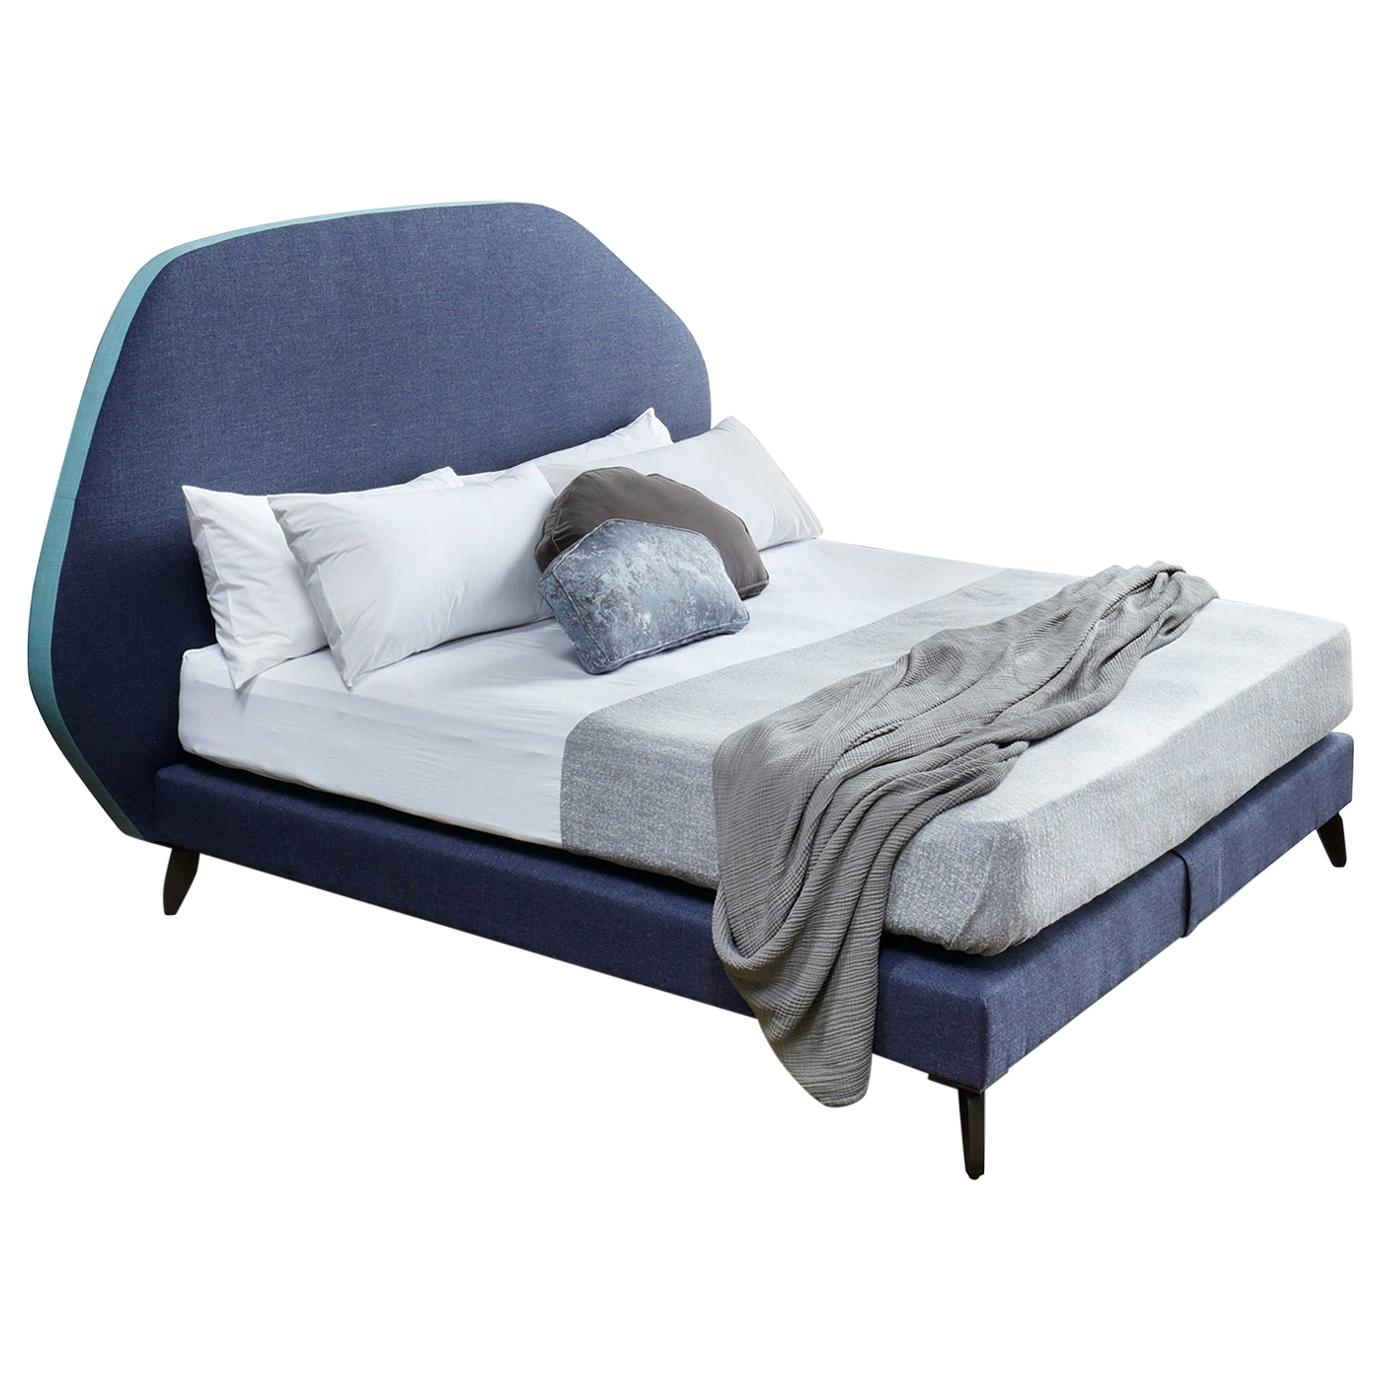 Handcrafted Savoir Cloud & Nº4 Bed Set, King Size